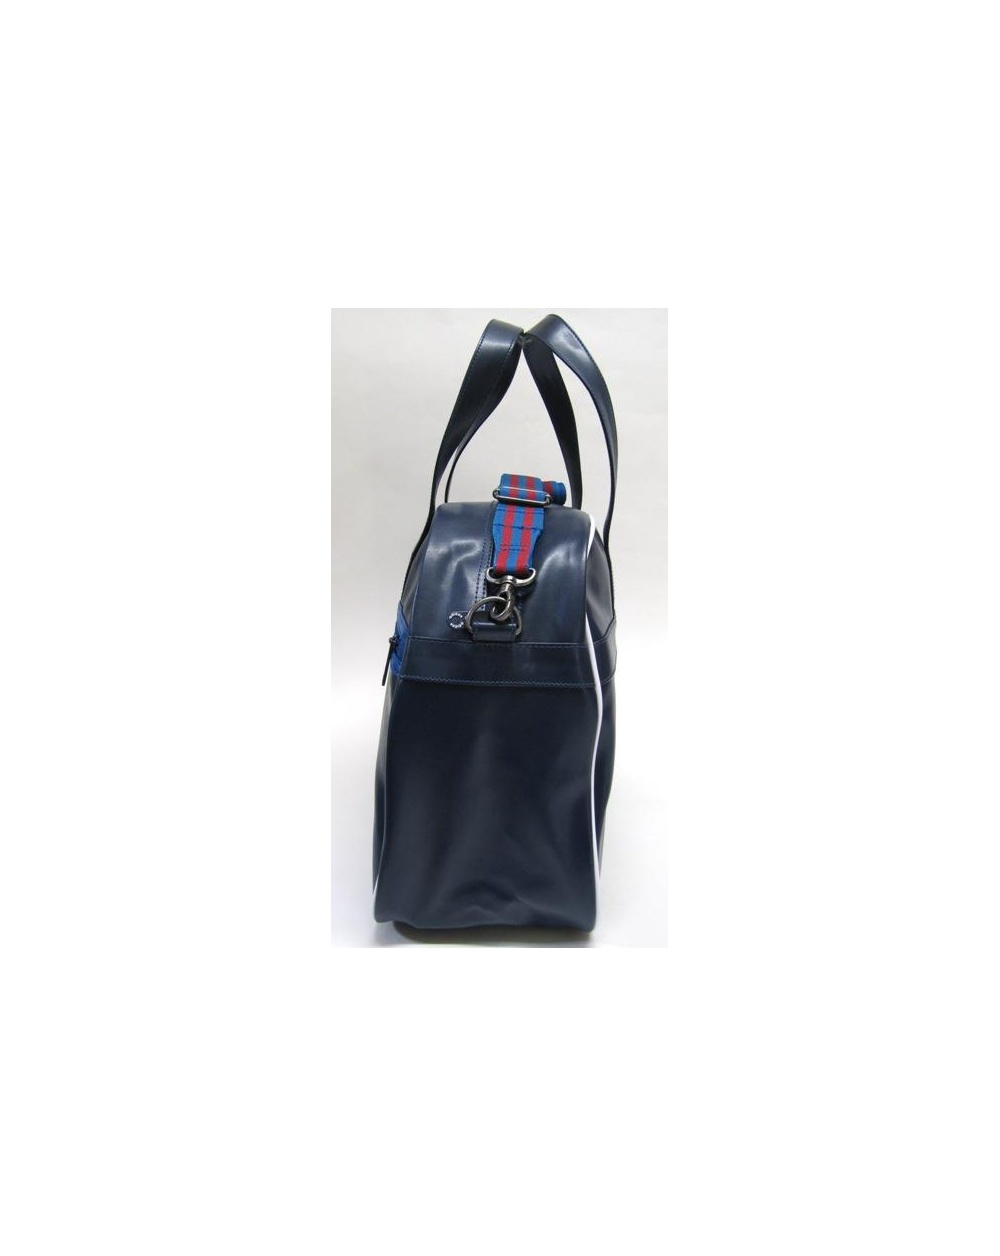 62627ac90ea0 Buy adidas originals holdall bag   OFF59% Discounted